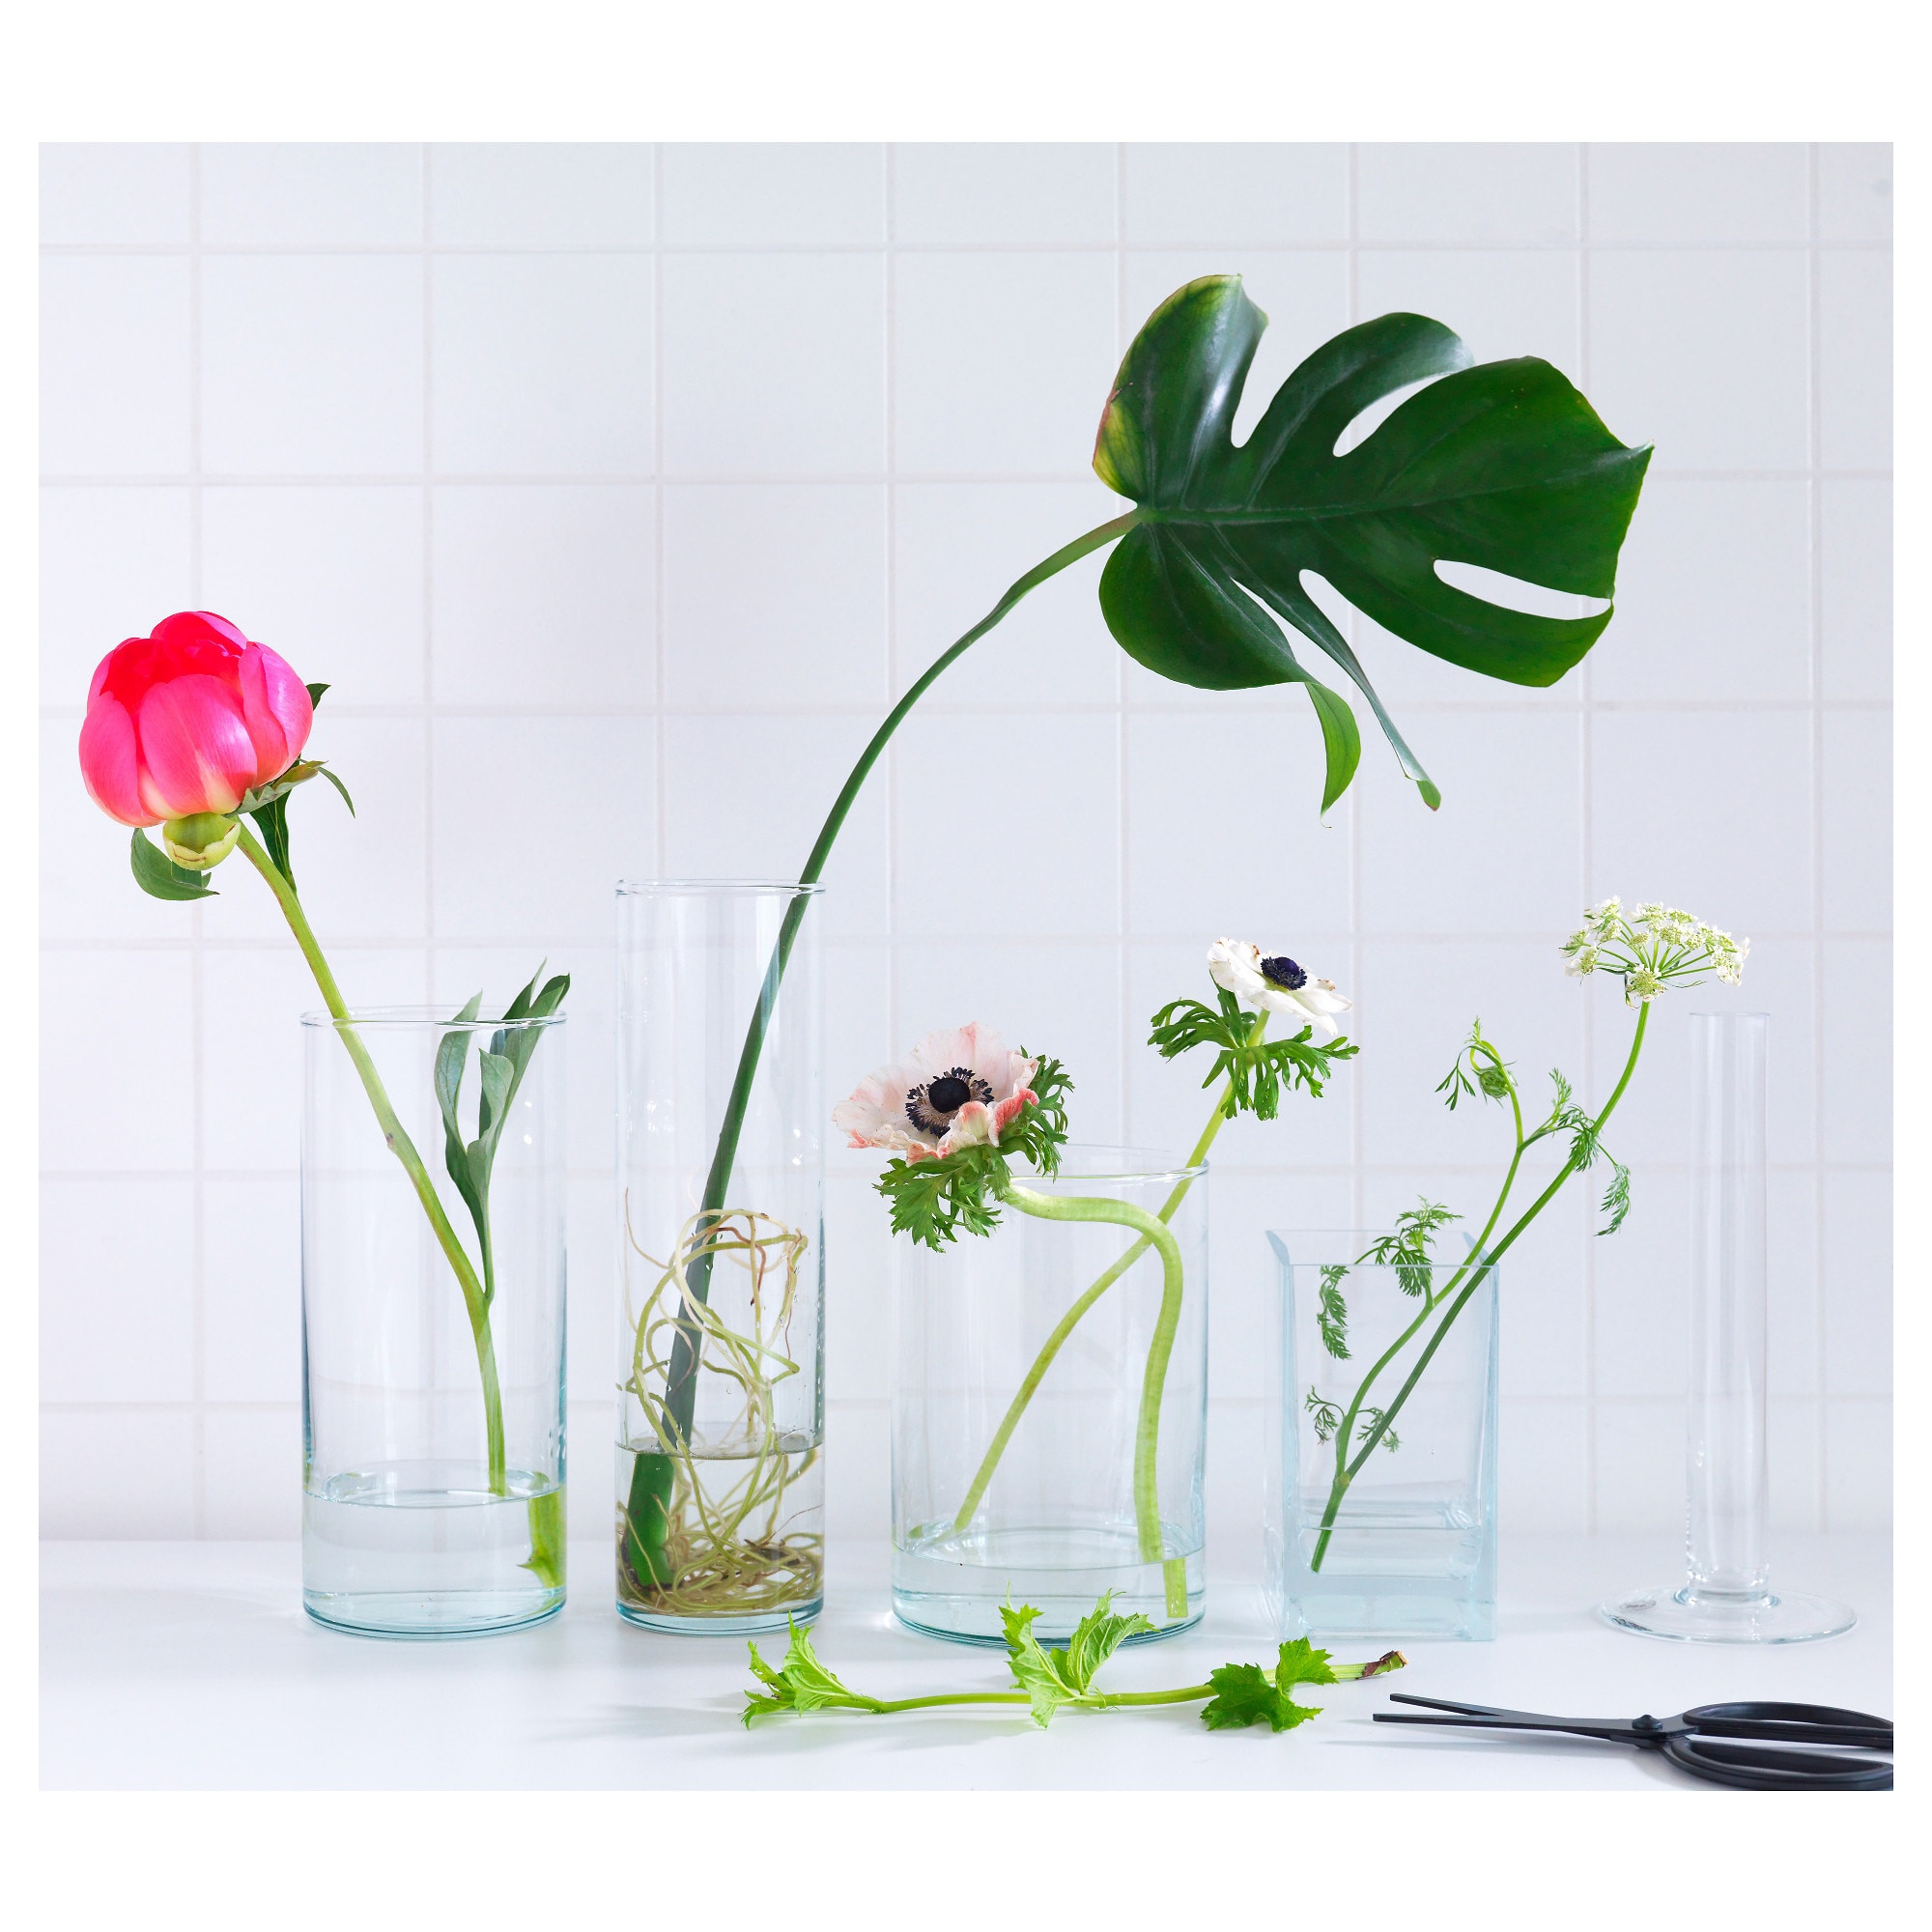 Artificial Flowers In Clear Vases Of Cylinder Vase Set Of 3 Ikea Inside 0392618 Pe560406 S5 Jpg